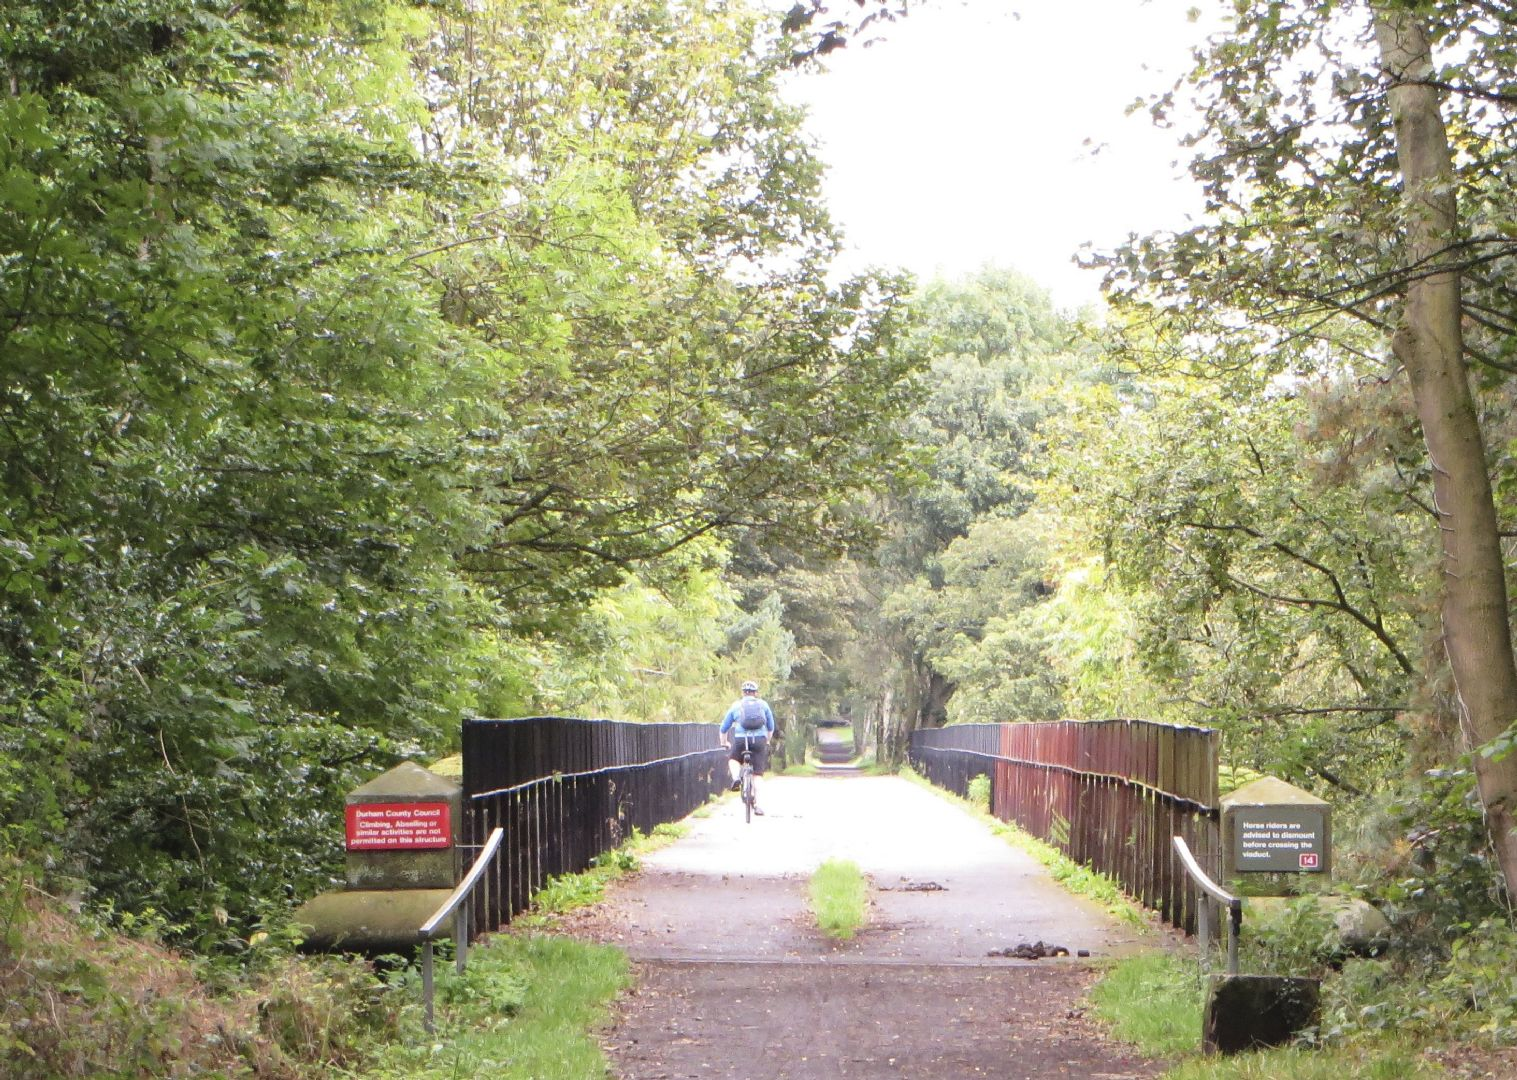 _Customer.47248.18372.jpg - UK - C2C - Coast to Coast 3 Days Cycling - Self-Guided Leisure Cycling Holiday - Leisure Cycling